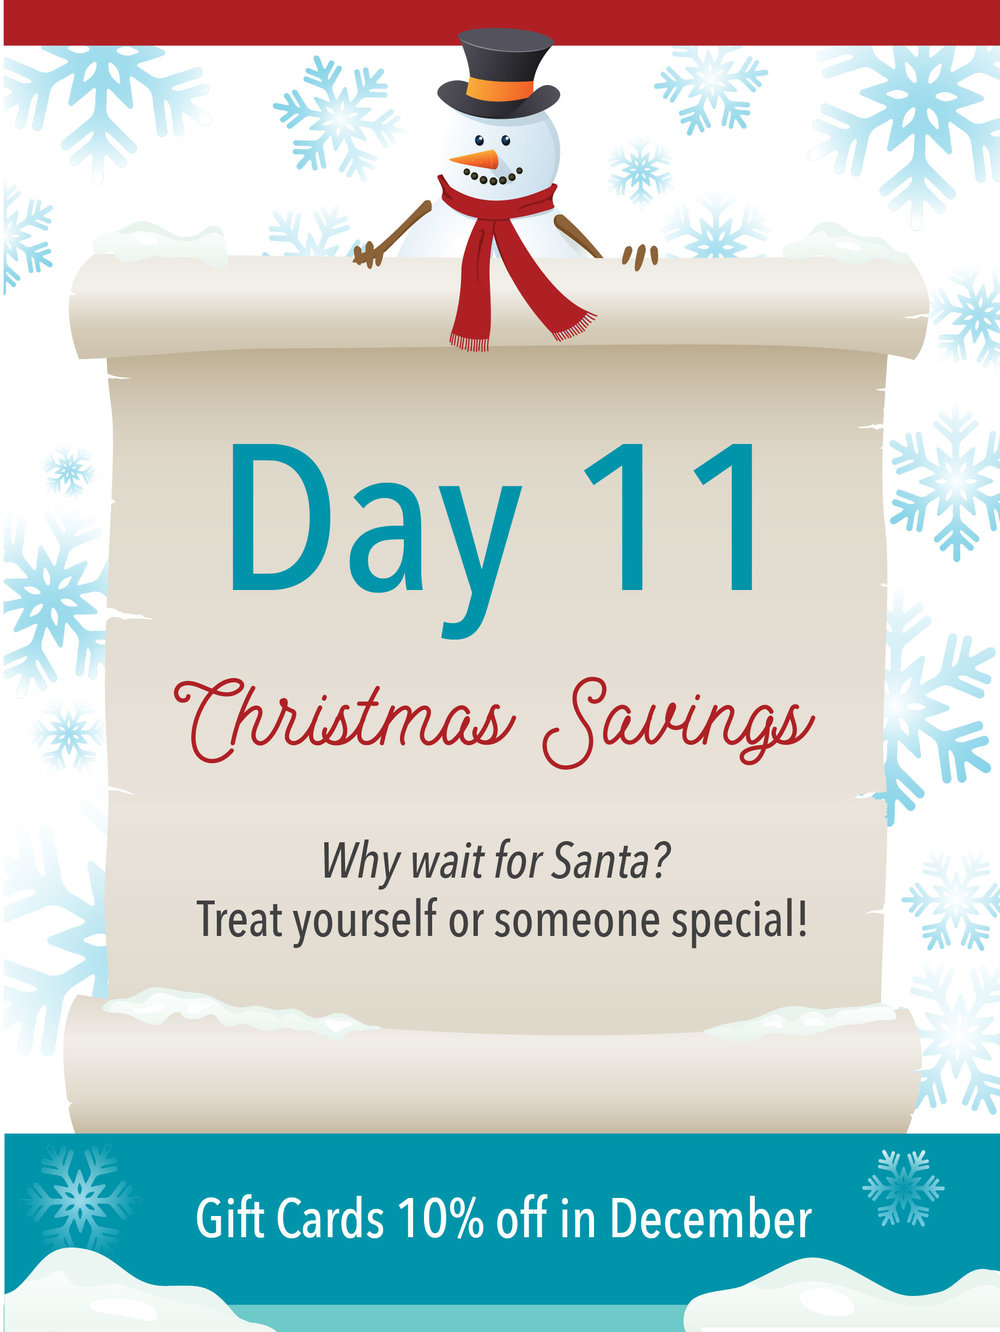 12 Days of Christmas Savings_2017-11.jpg